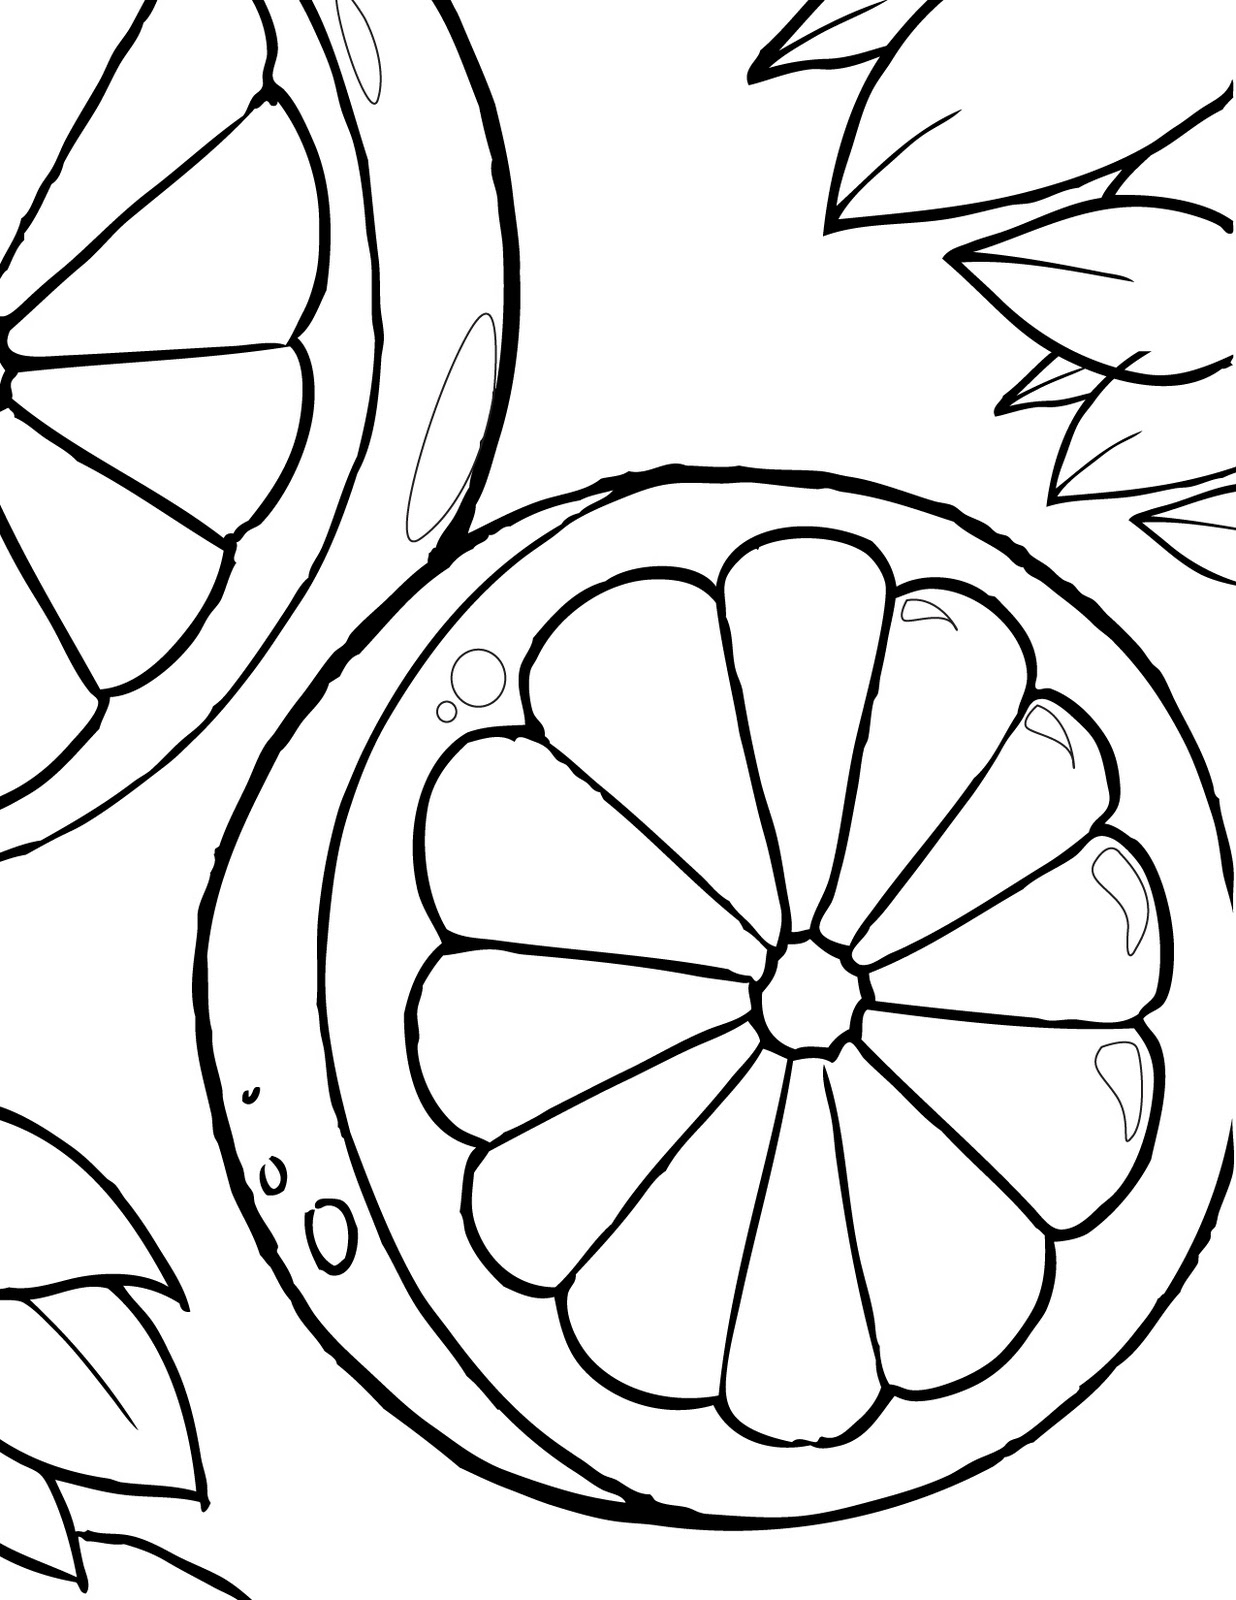 colored pages sailor moon coloring pages colored pages